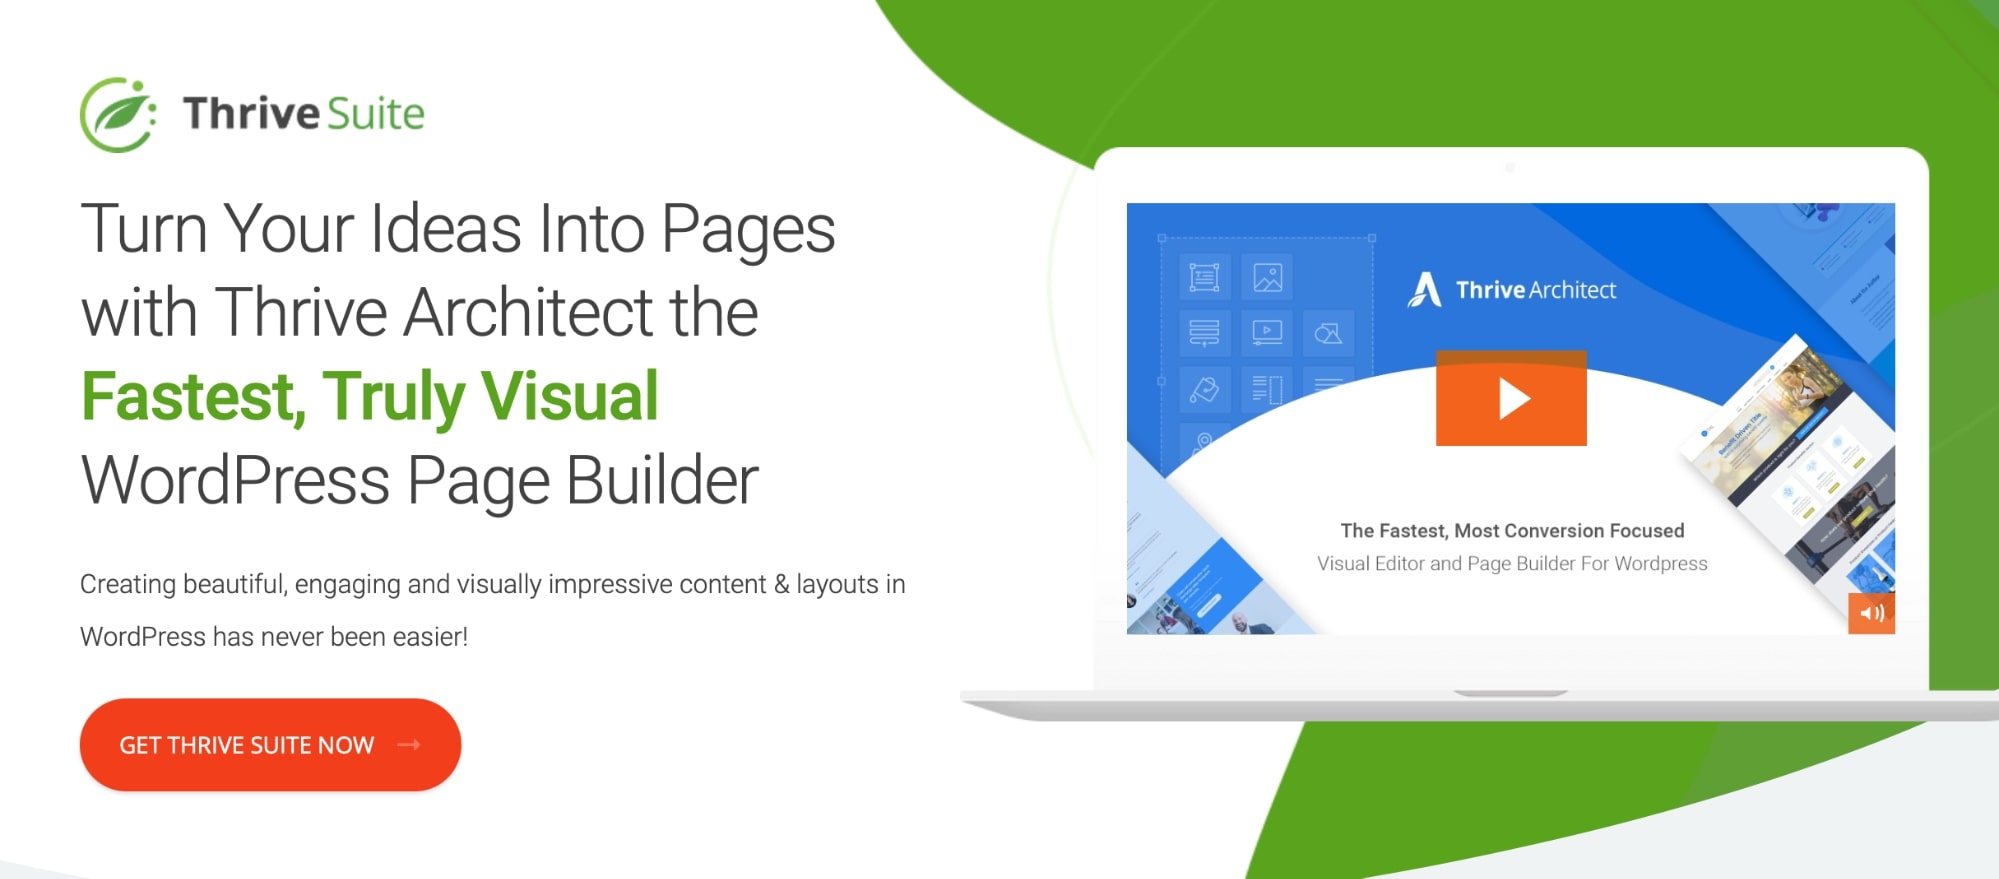 Divi vs Thrive Architect page builder for WordPress